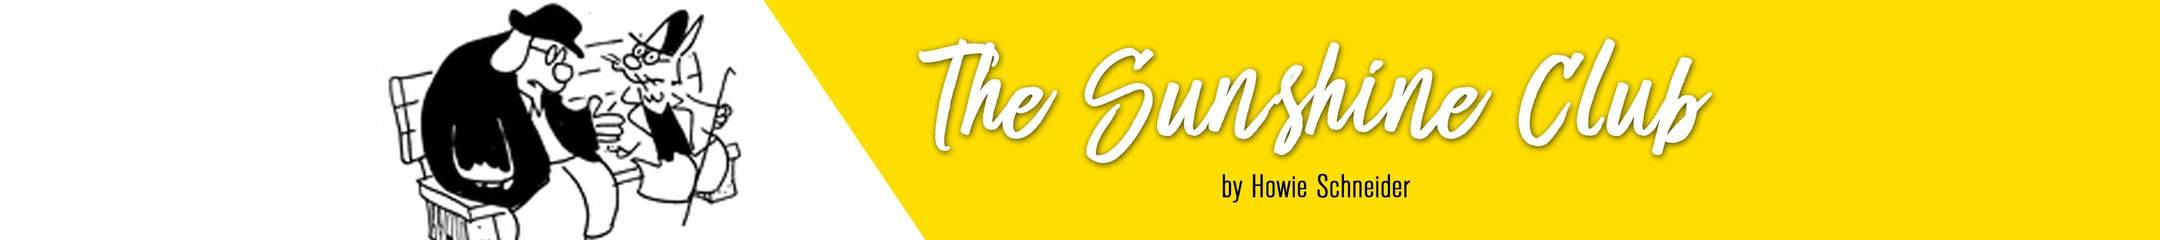 The Sunshine Club